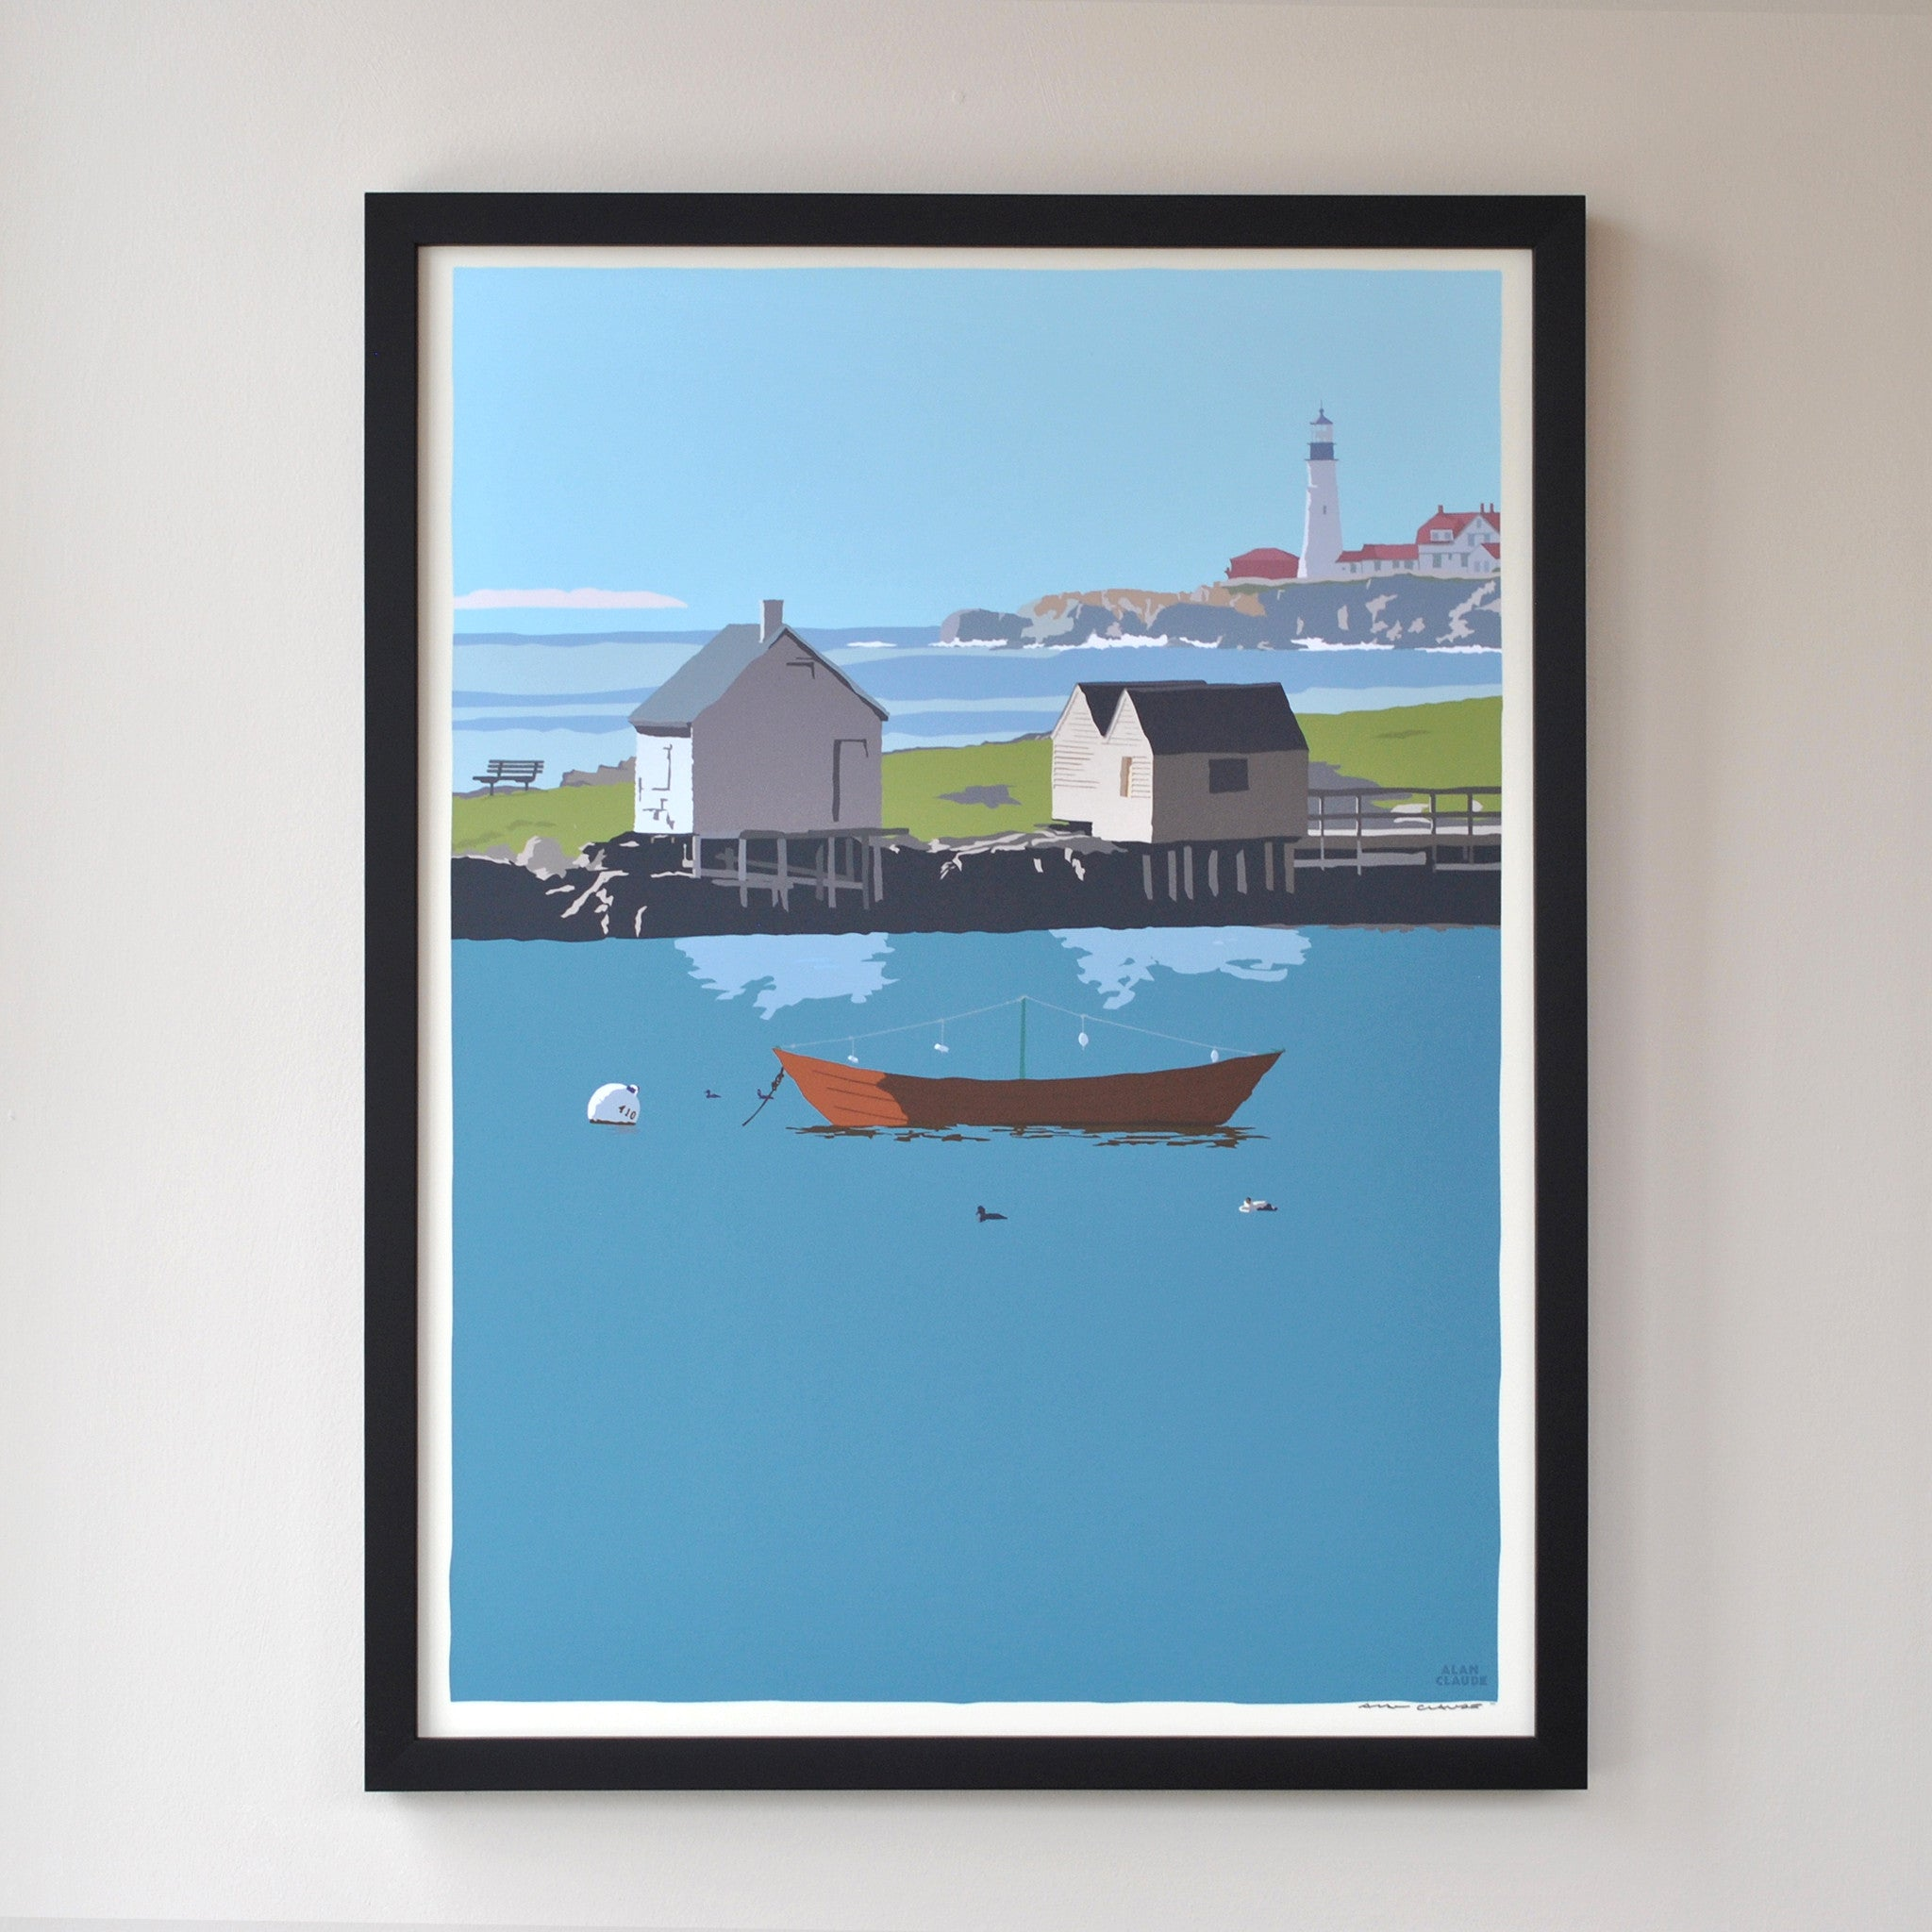 "Willard Beach Art Print 18"" x 24"" Framed Wall Poster - Maine"